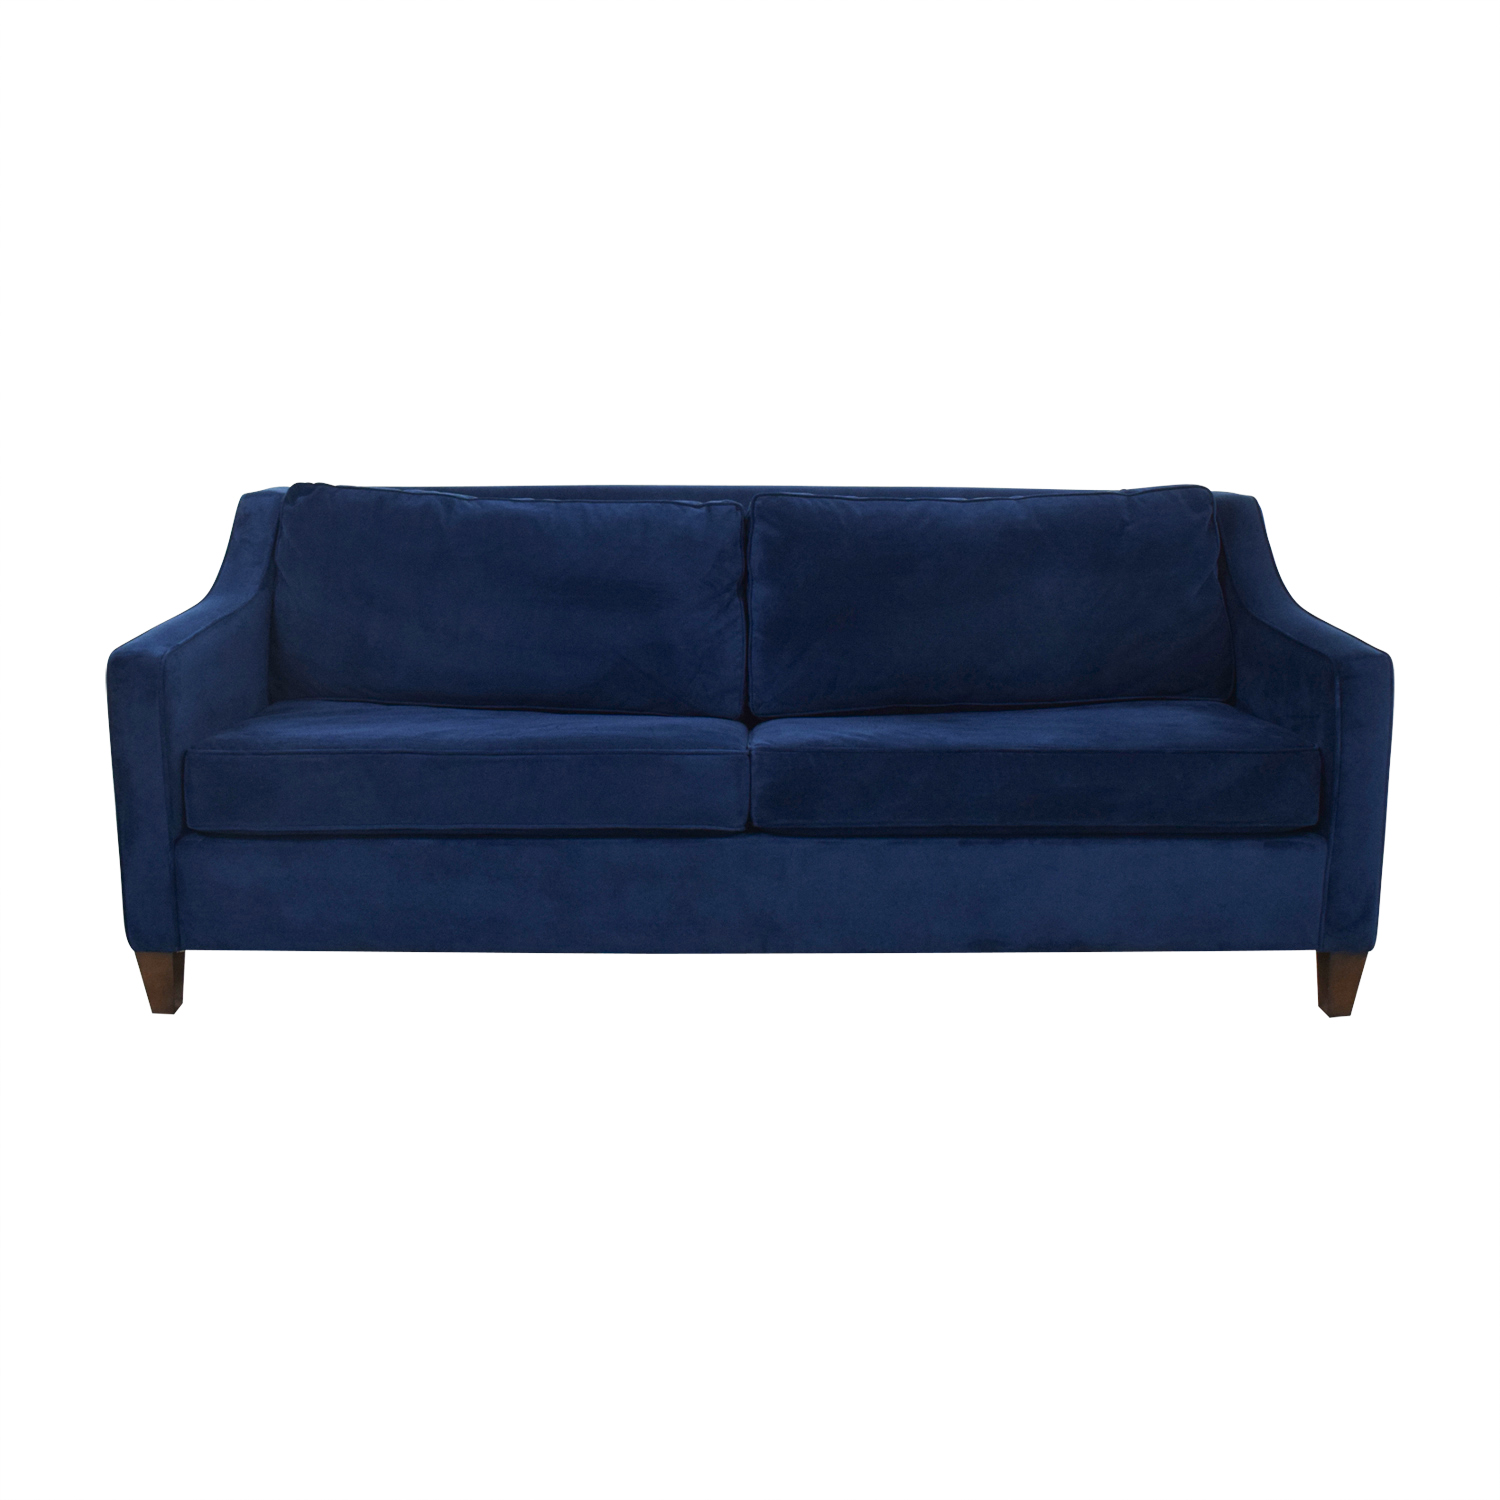 West Elm West Elm Paidge Queen Sleeper Sofa second hand